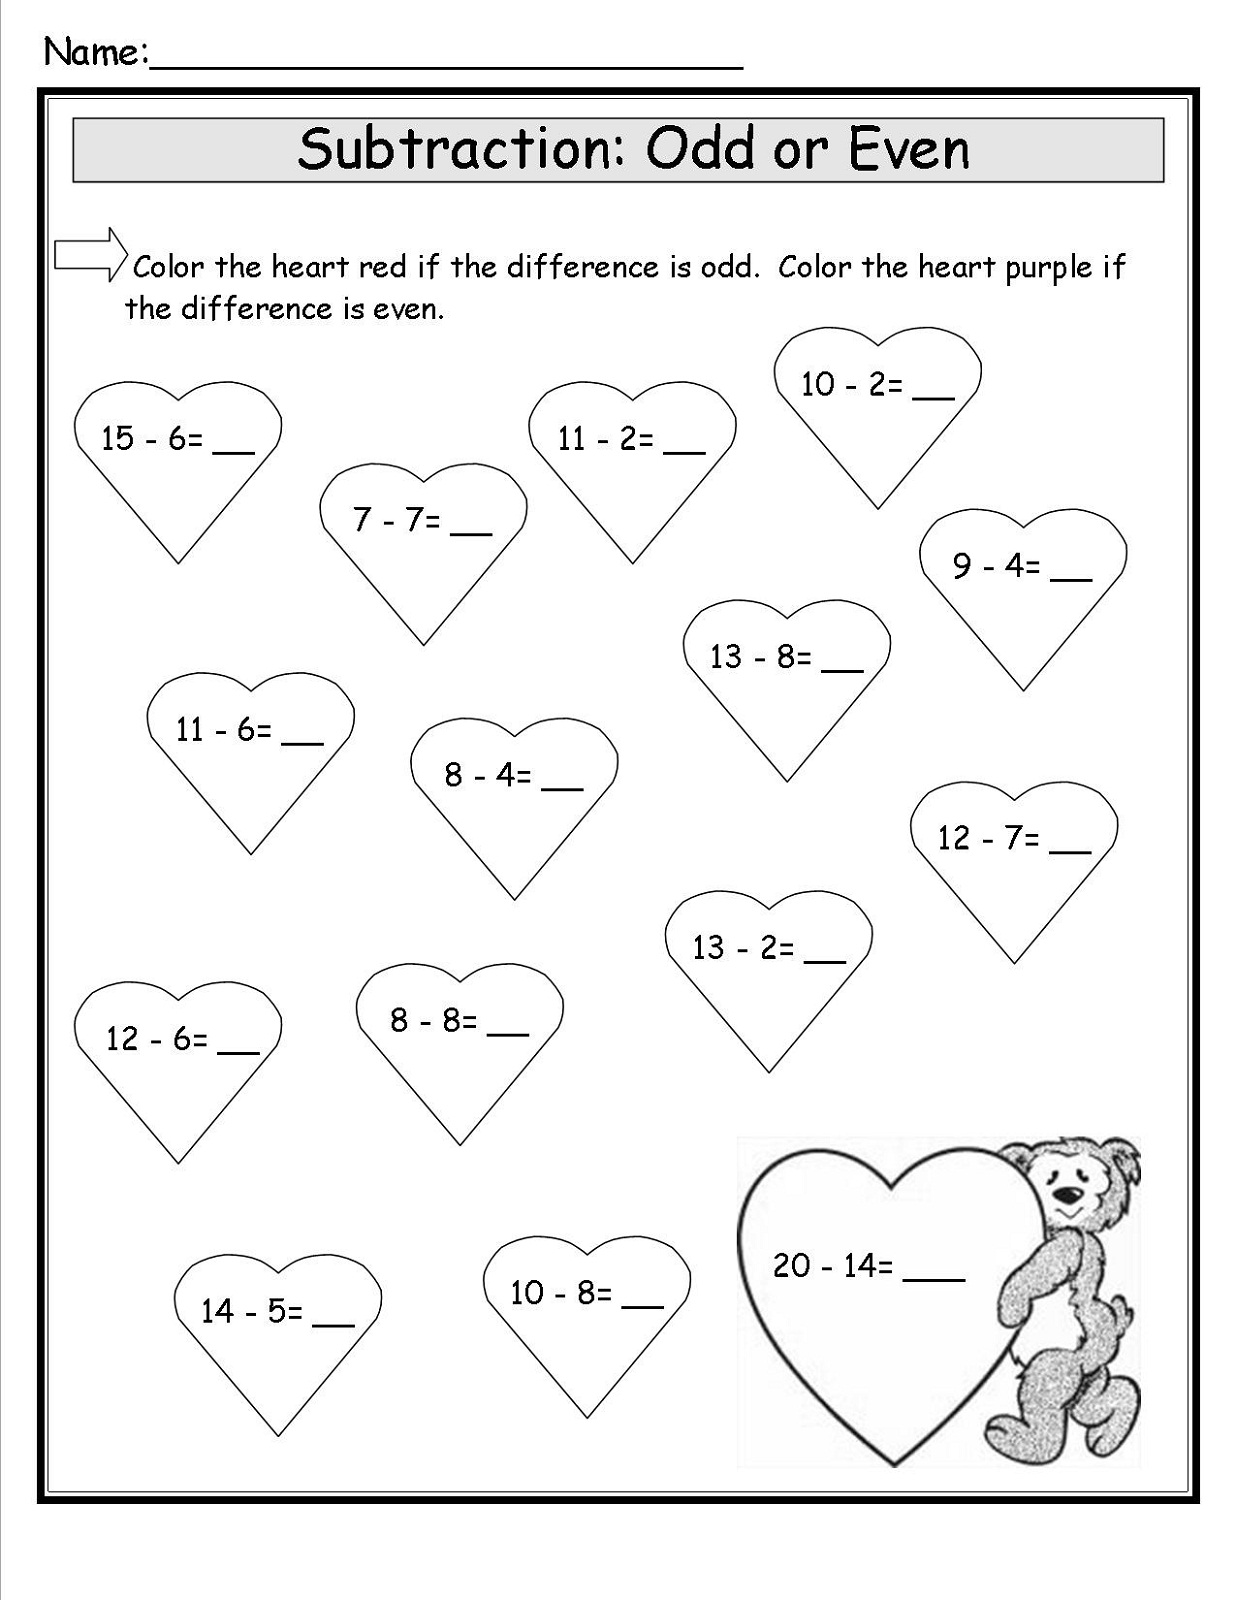 Easy Odd And Even Worksheet